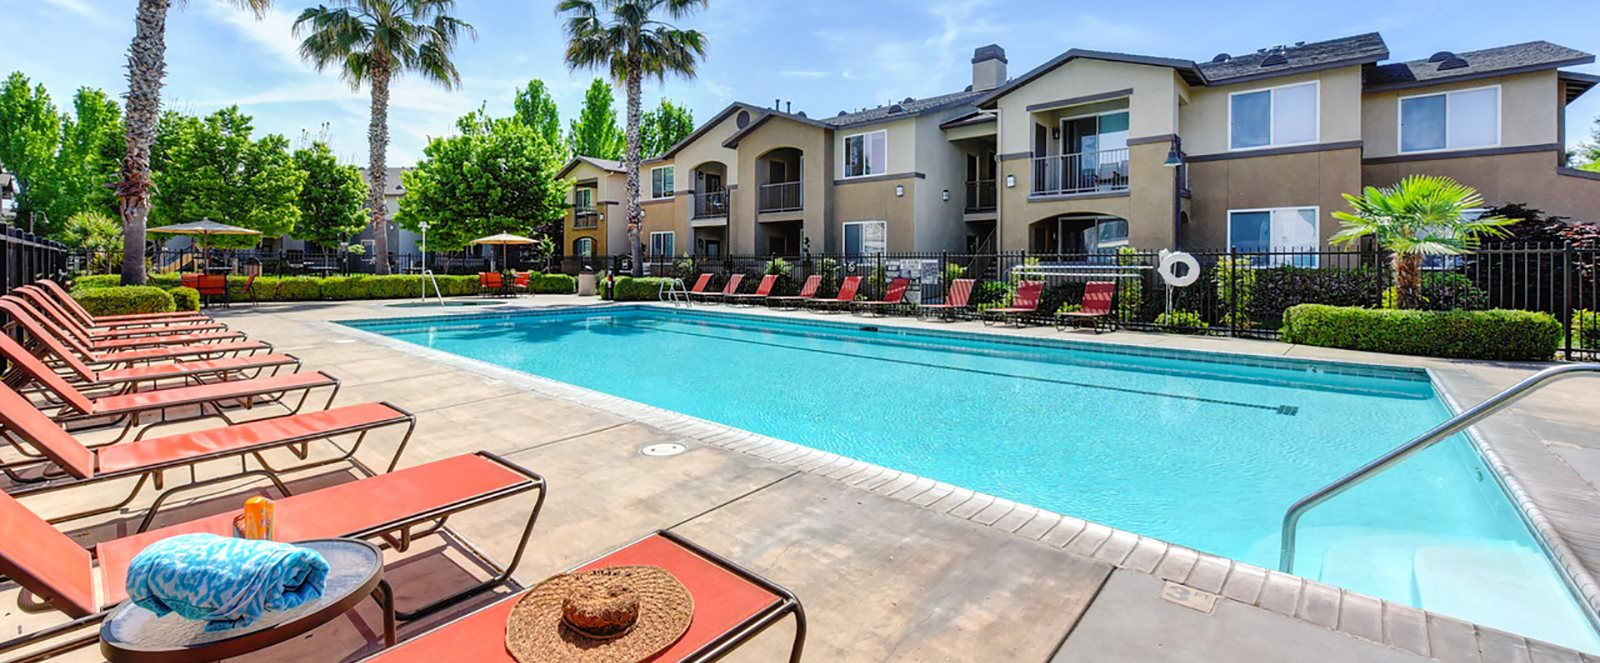 Pool with lounge chairs l Eaton Village Apartments in Chico CA